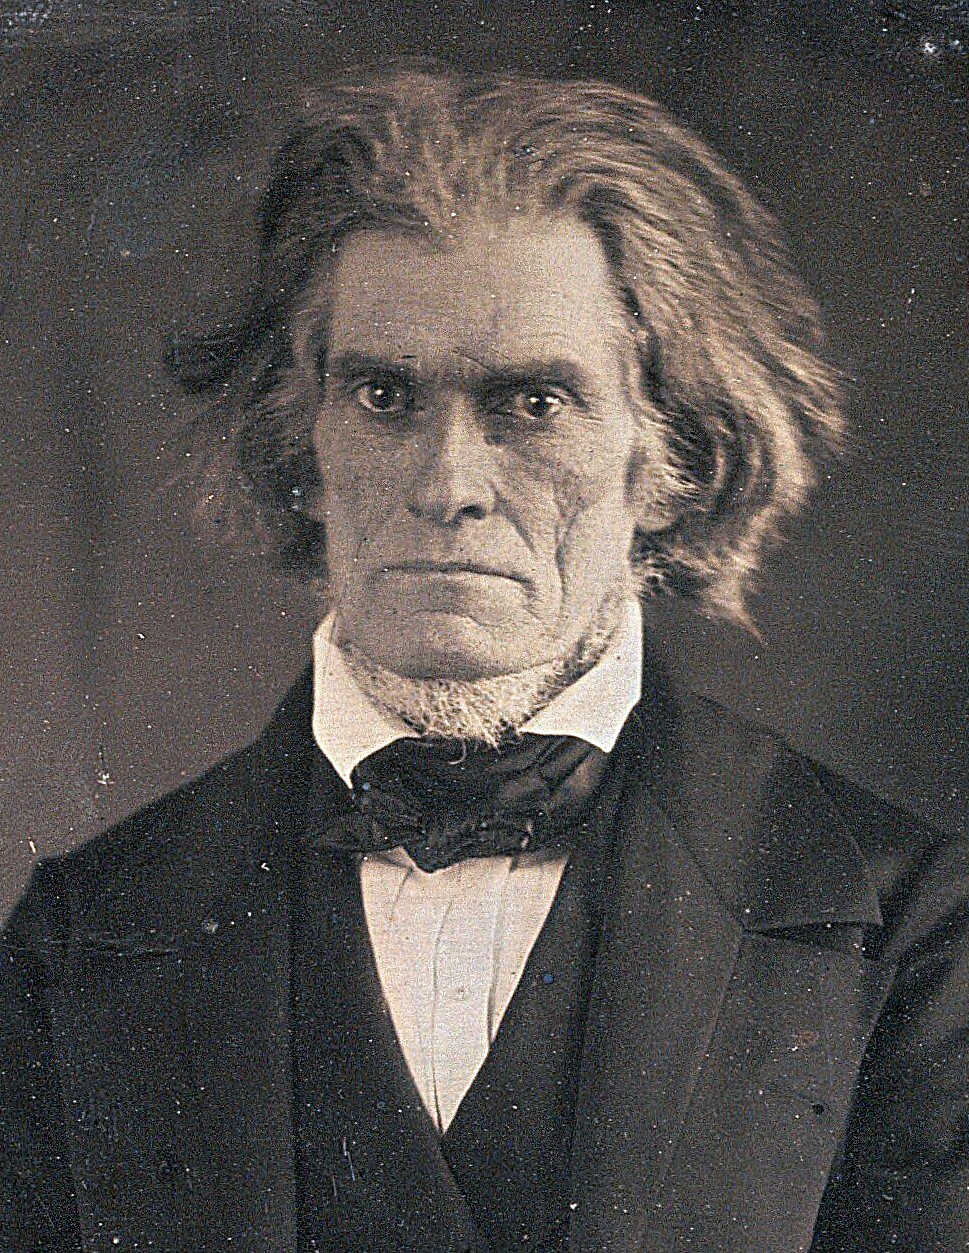 John_C_Calhoun_by_Mathew_Brady,_March_1849-crop.jpg